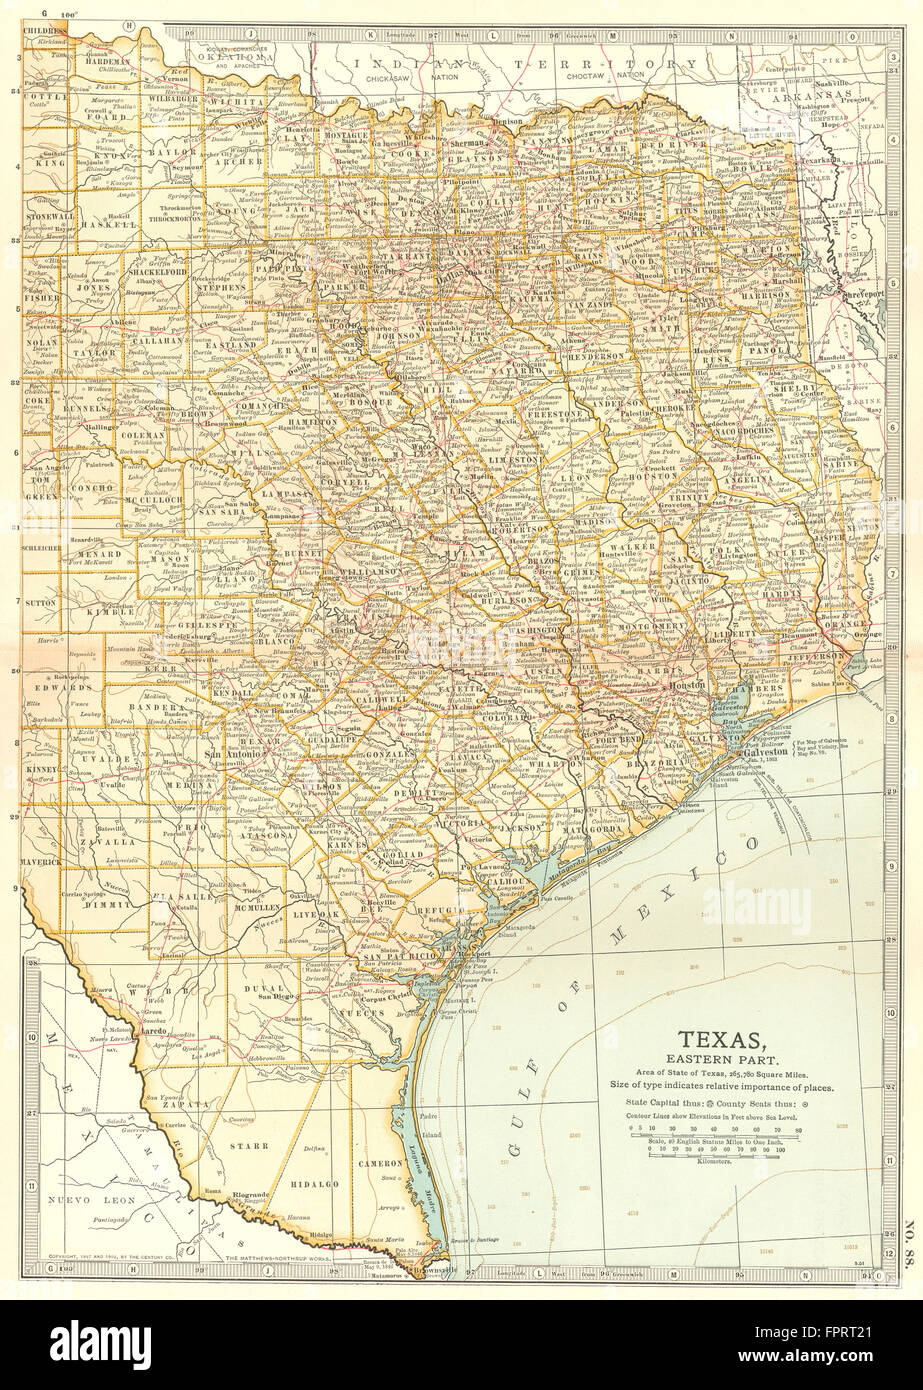 Map Of Texas Revolution.Texas East State Map Shows Texas Revolution Battlefields Dates